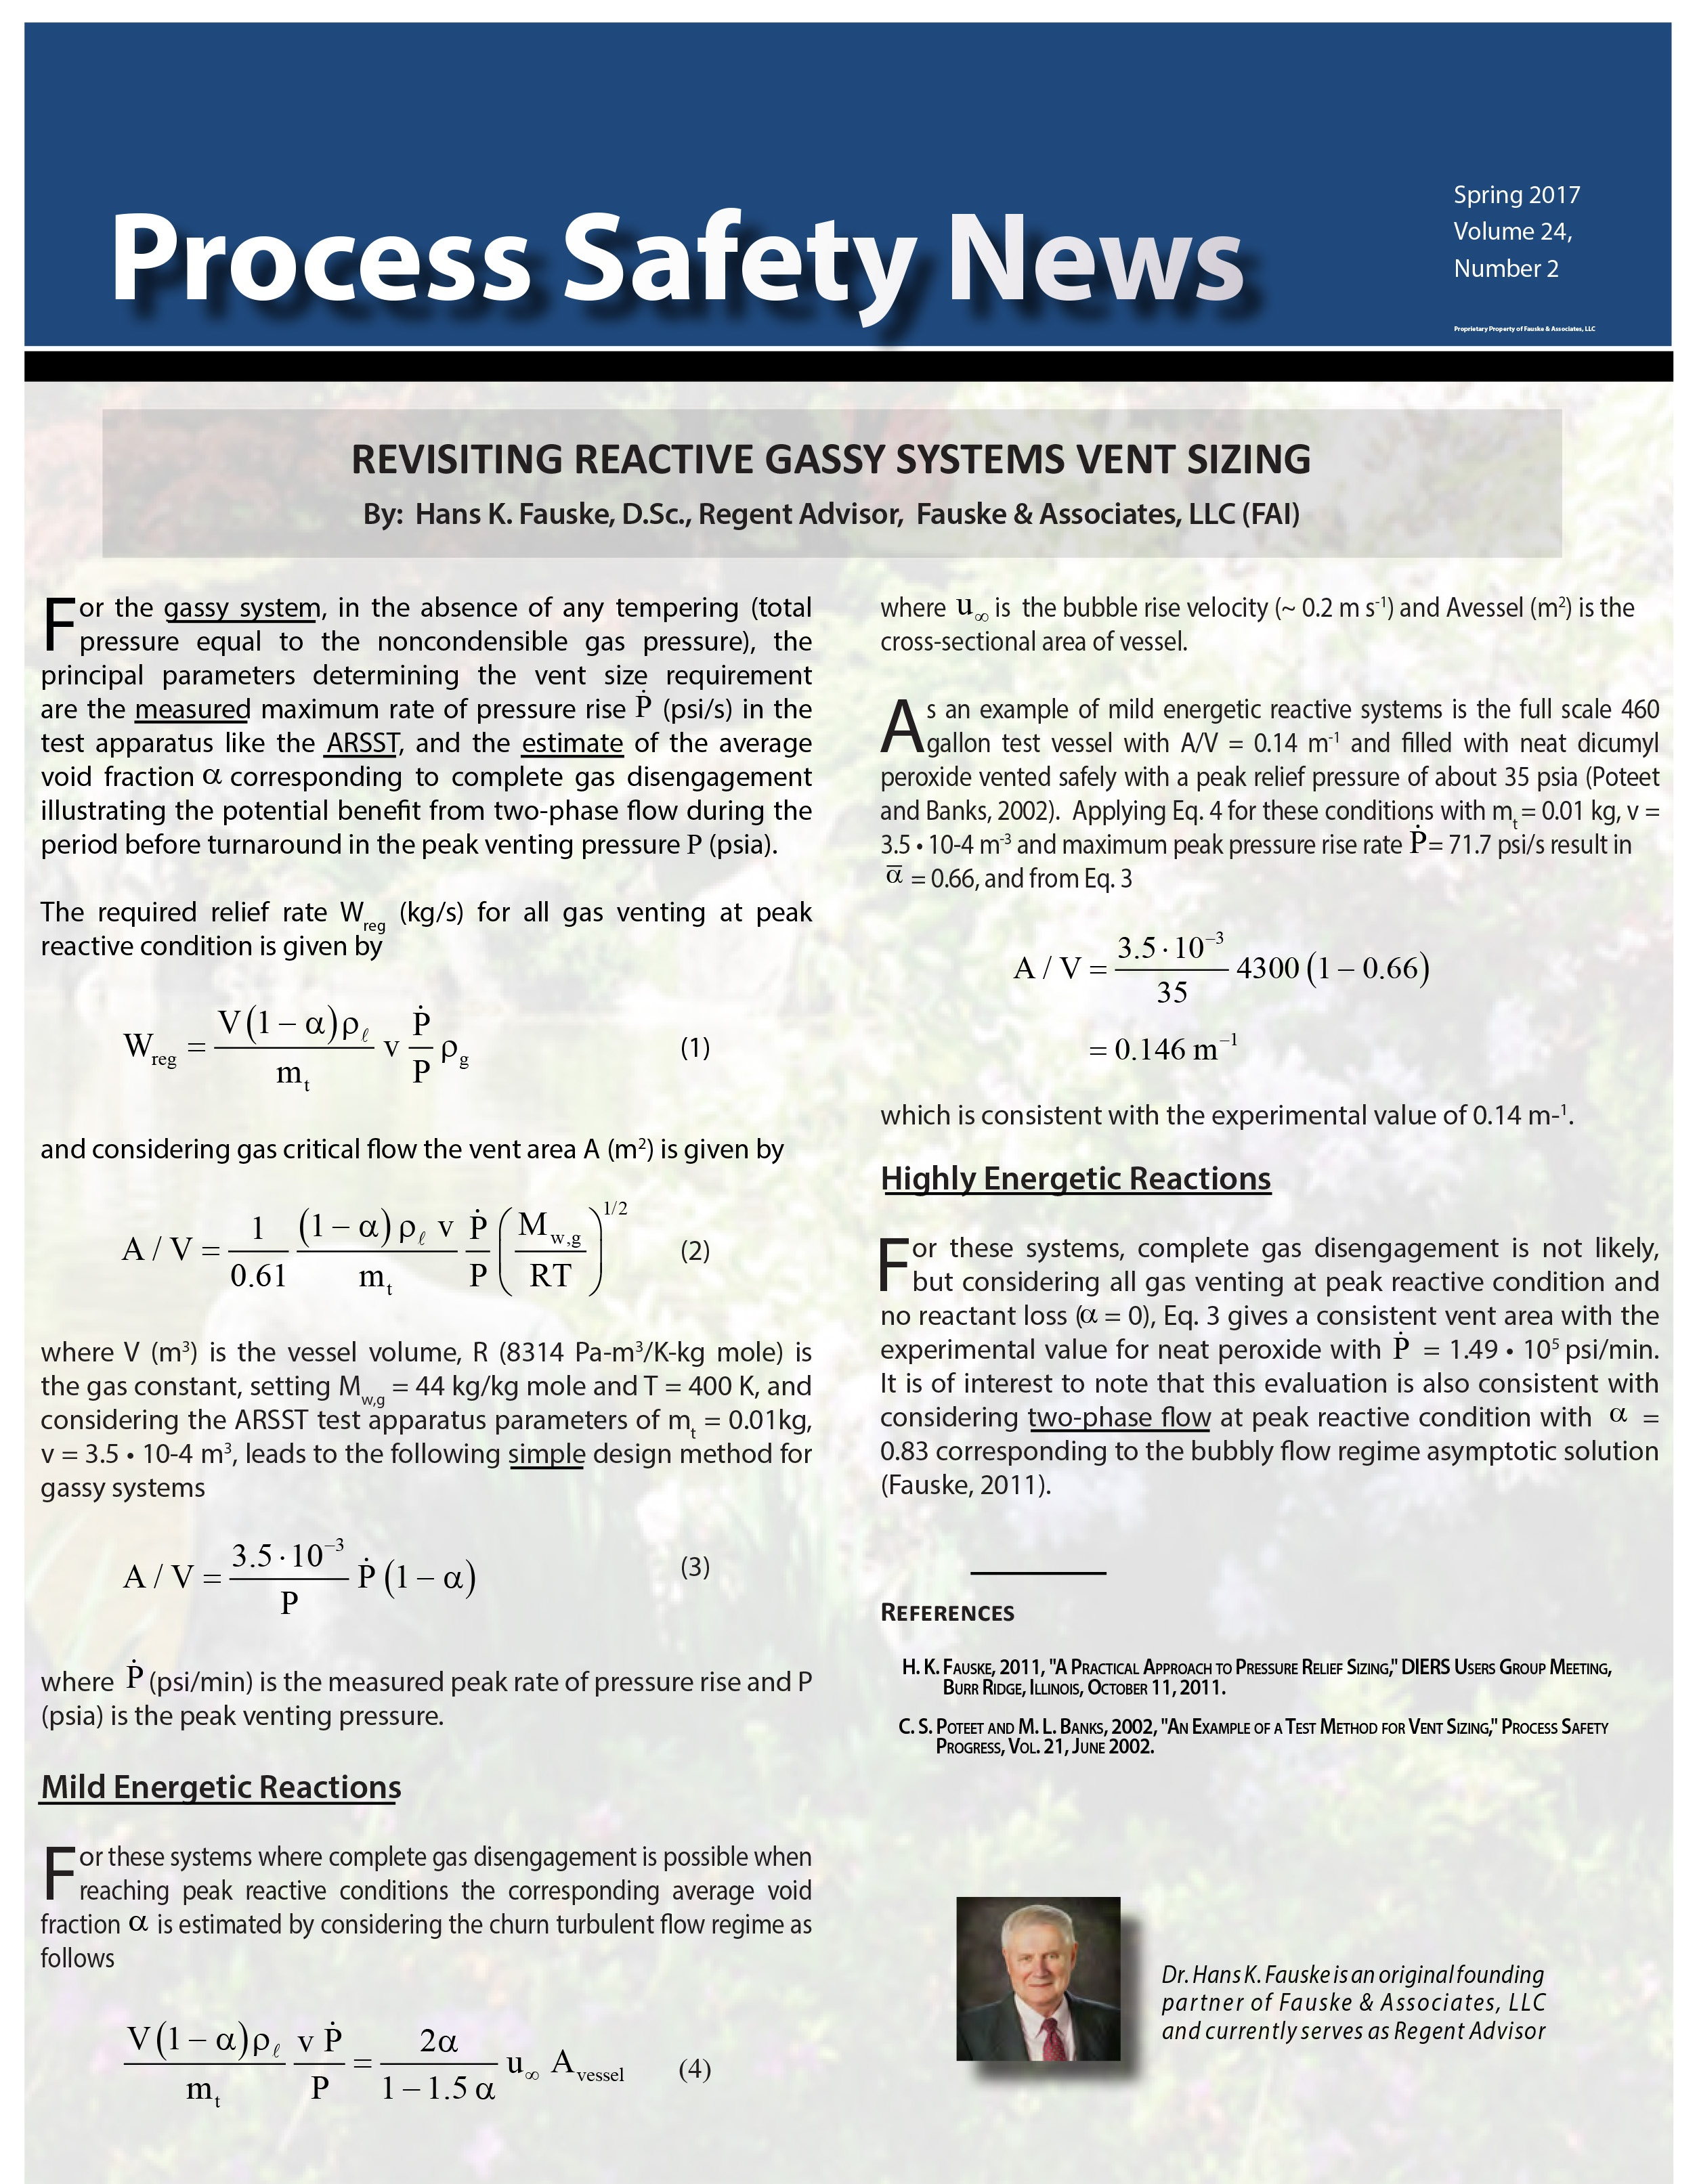 Process Safety Newsletter  Spring 2017-1.jpg